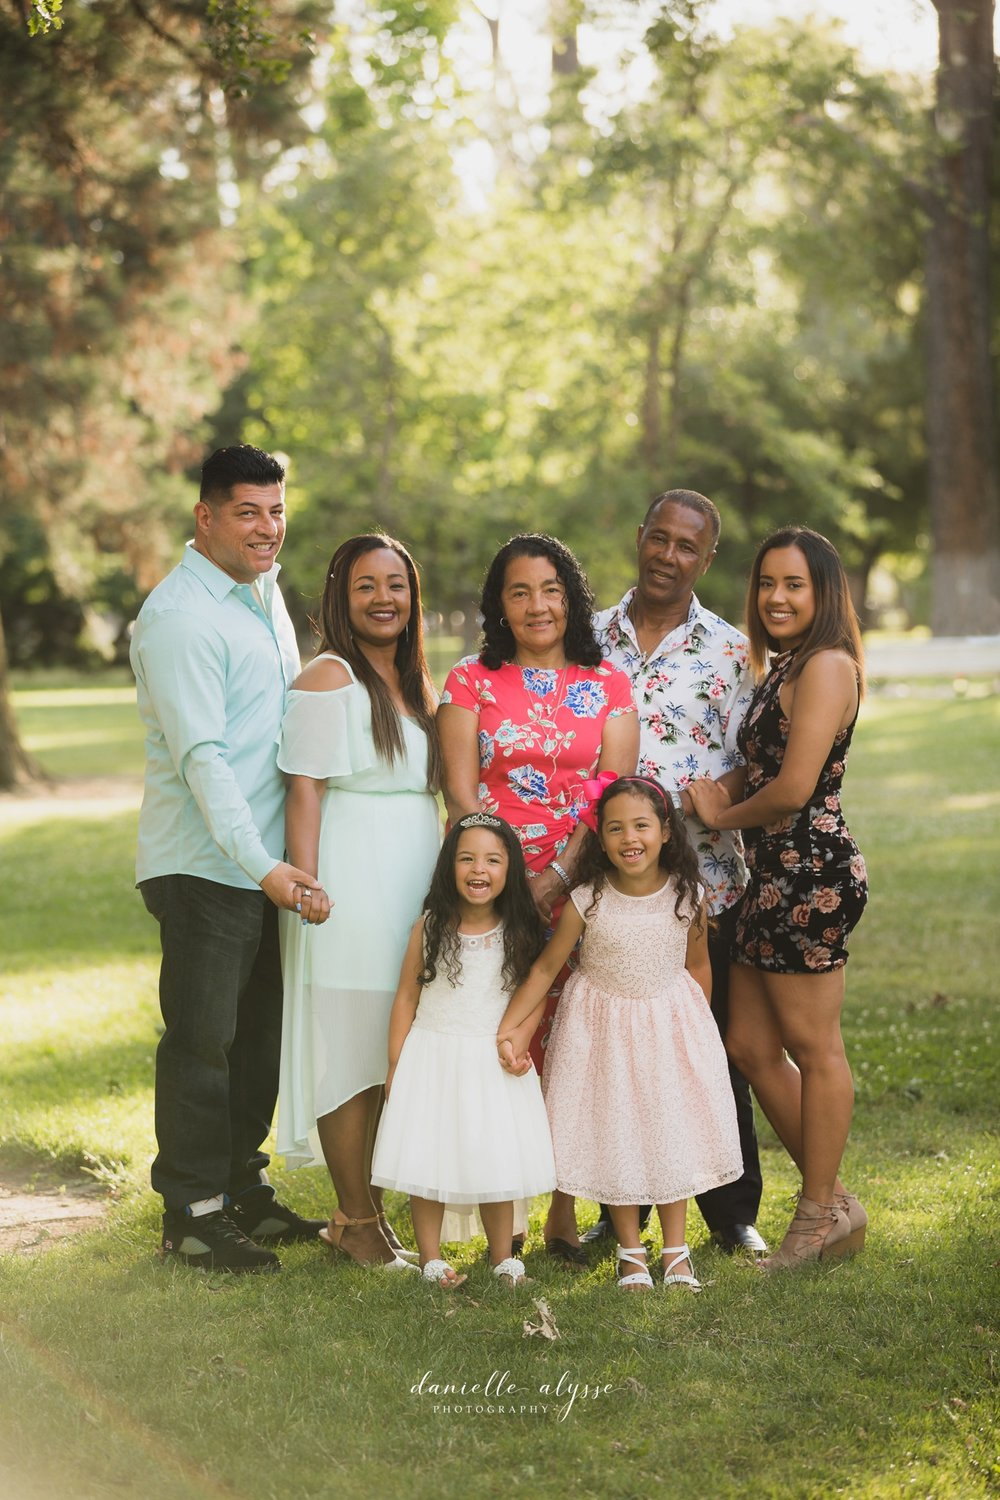 180604_family_portrait_eresvey_state_capitol_park_california_danielle_alysse_photography_blog_31_WEB.jpg